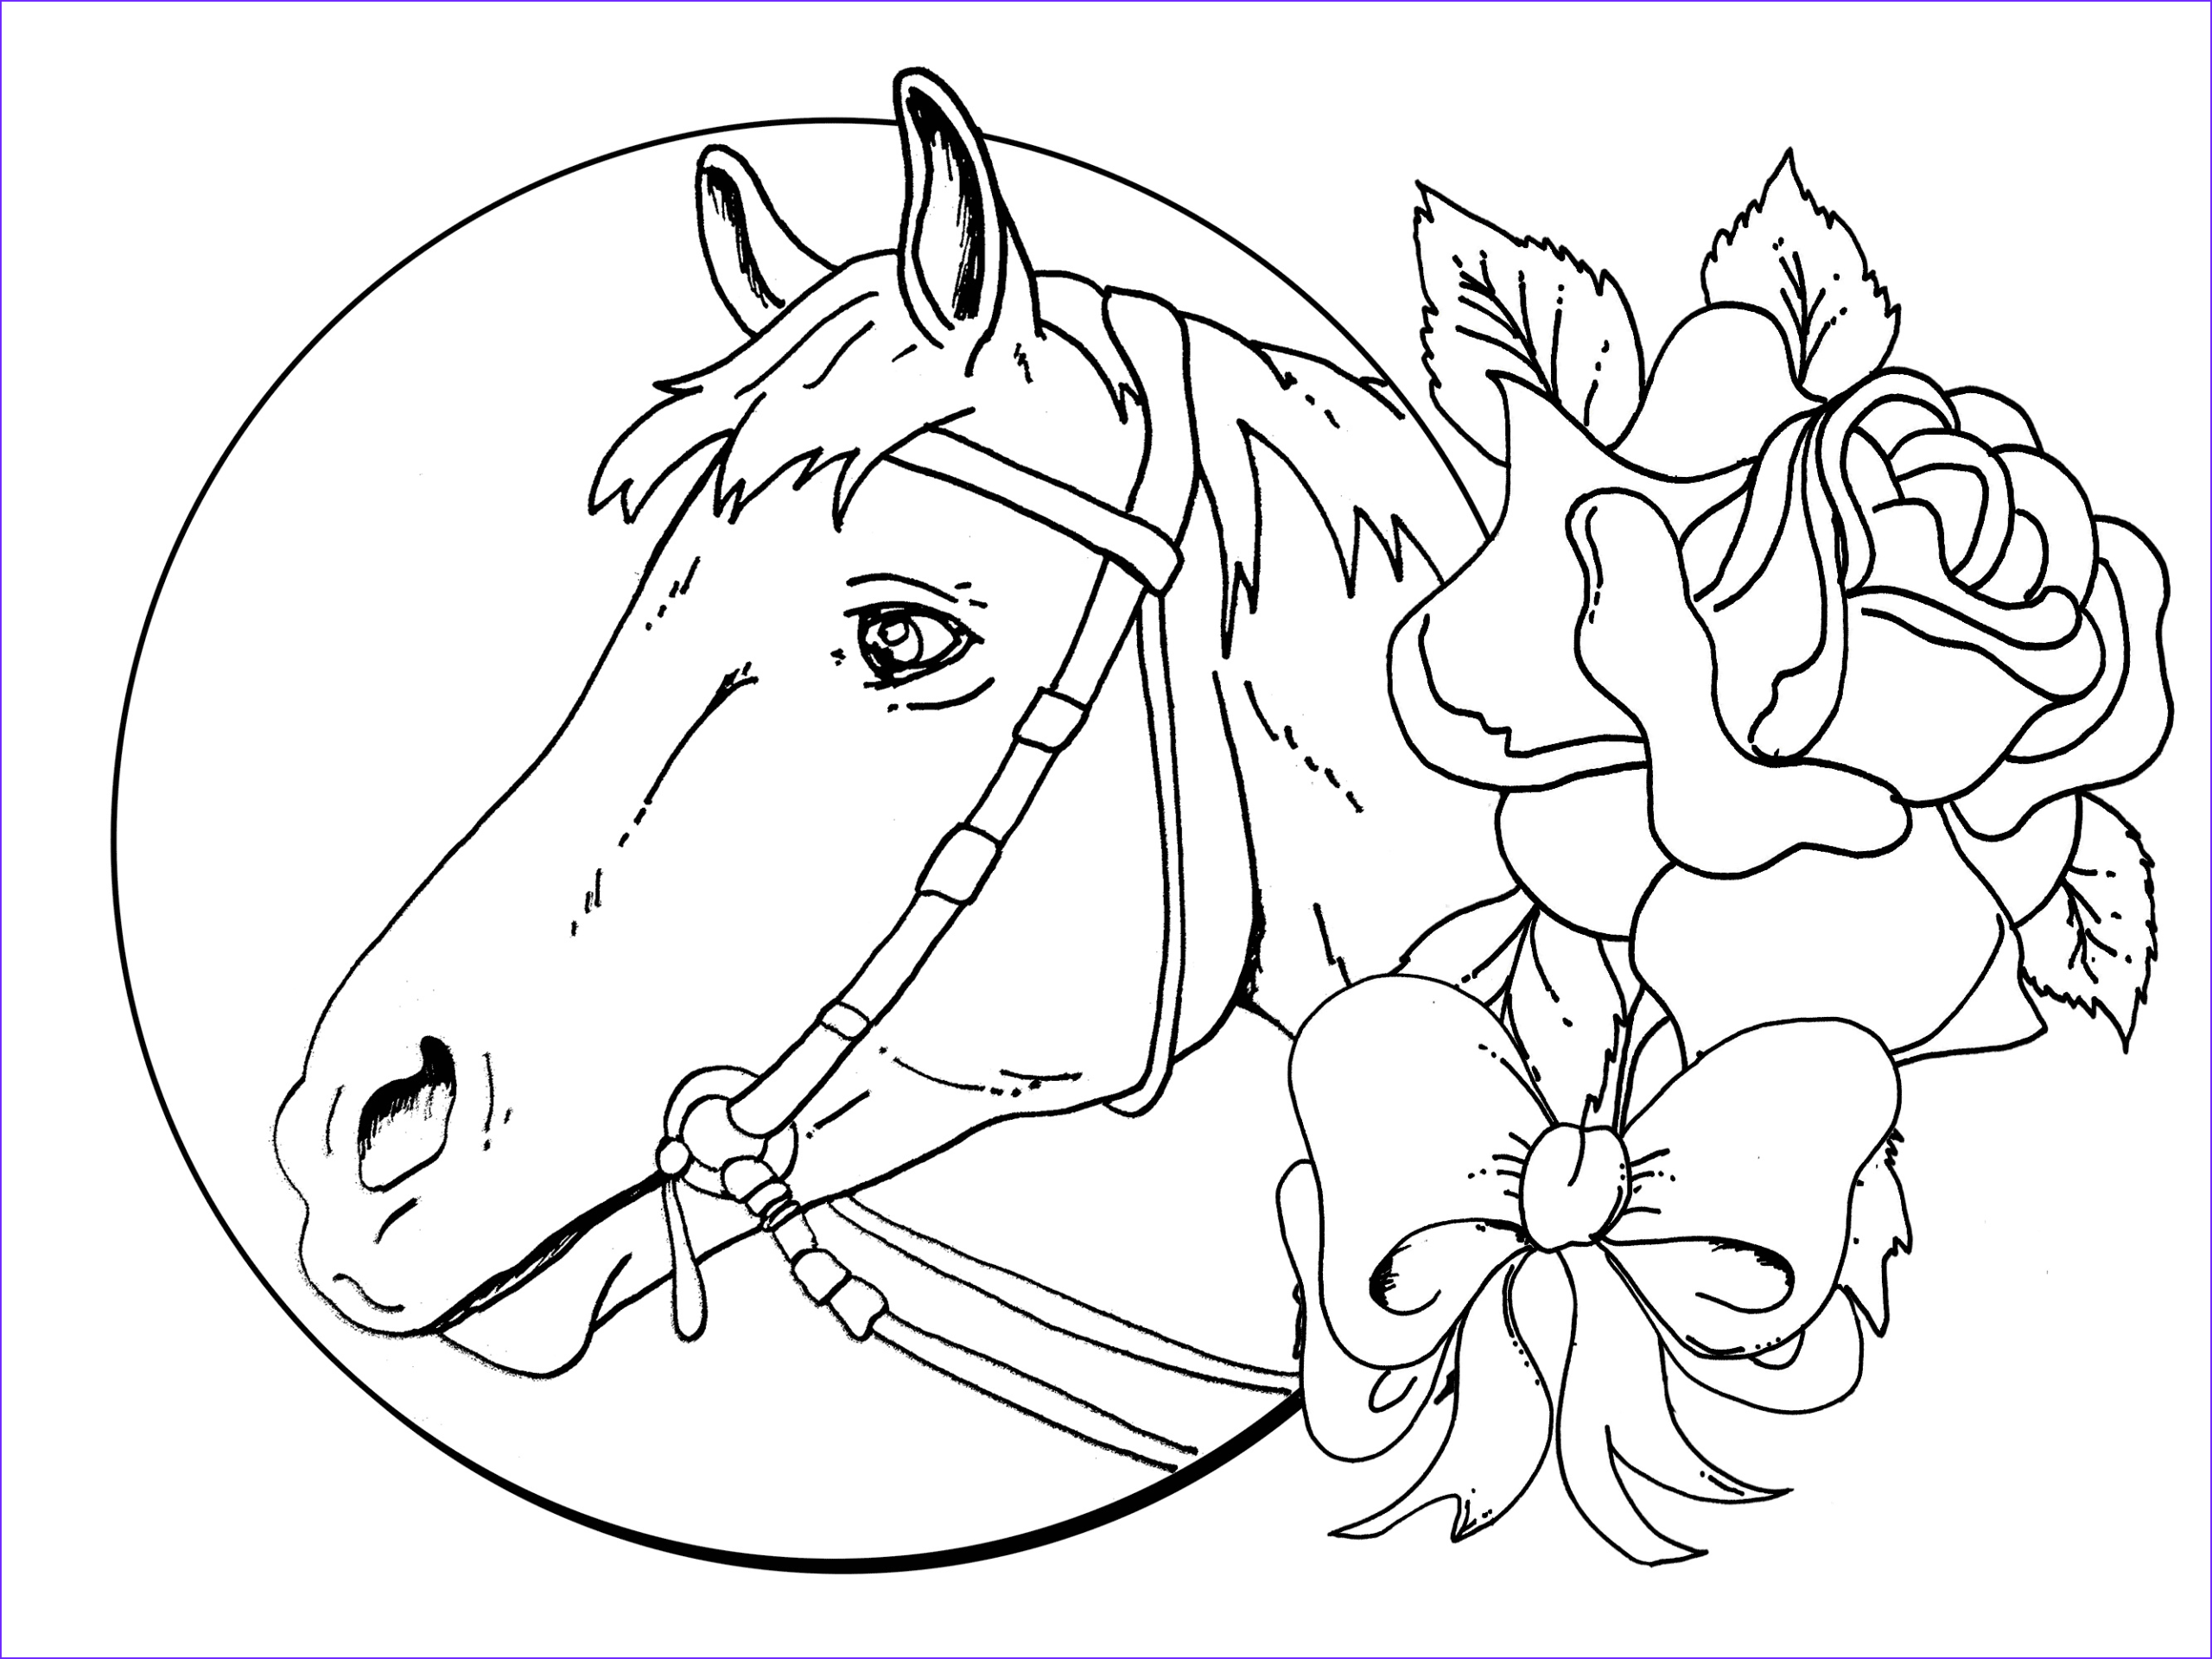 Printable Horse Coloring Pages Awesome Photography Detailed Christmas Coloring Pages